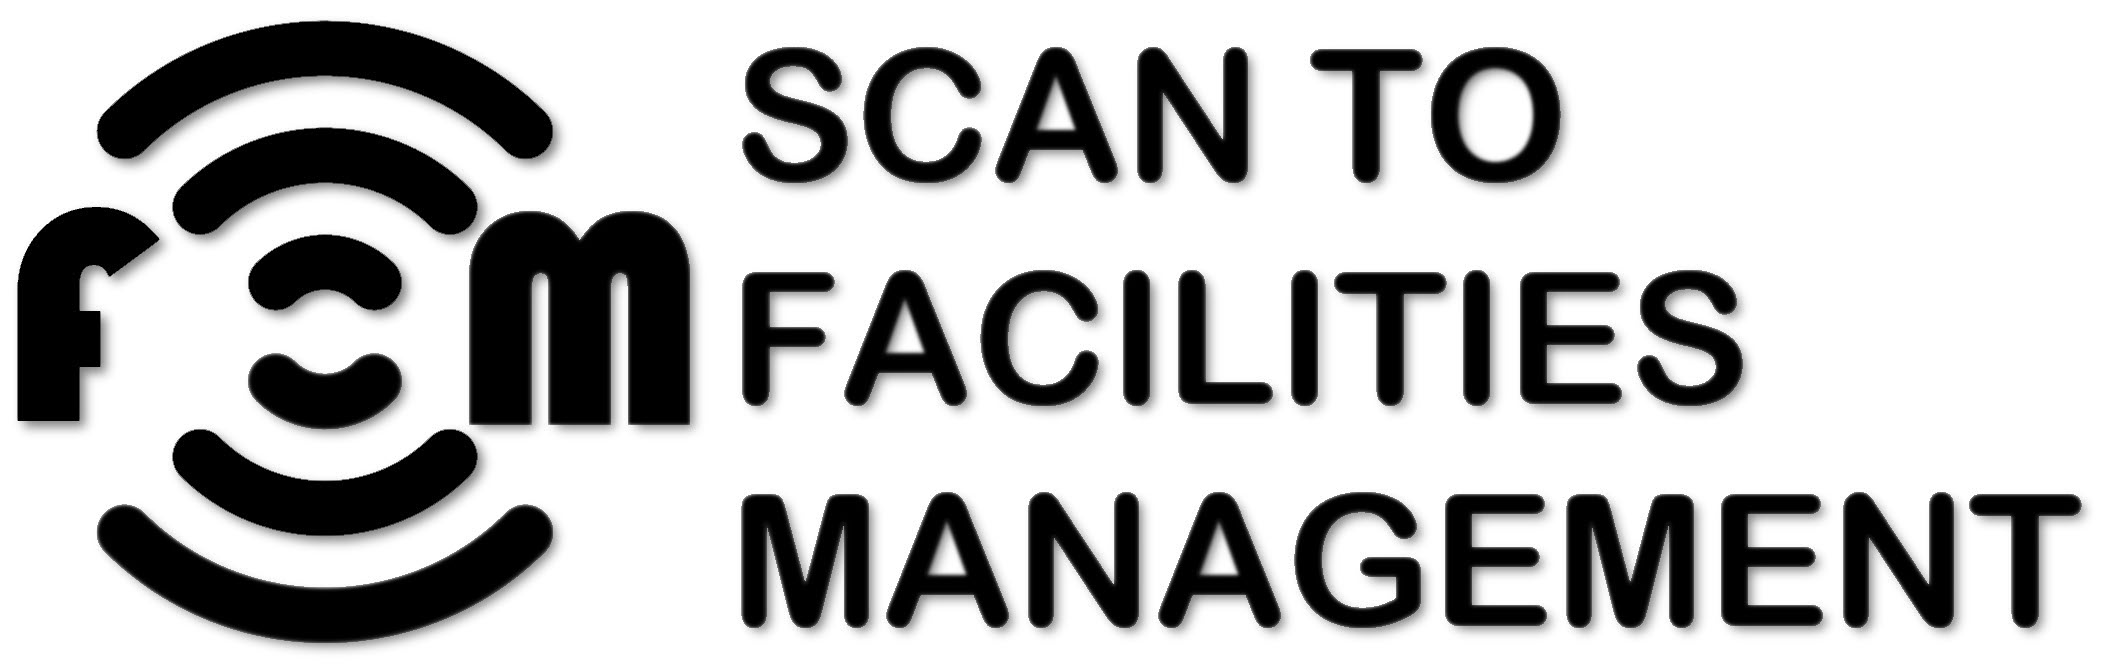 SCAN to Facilities Management